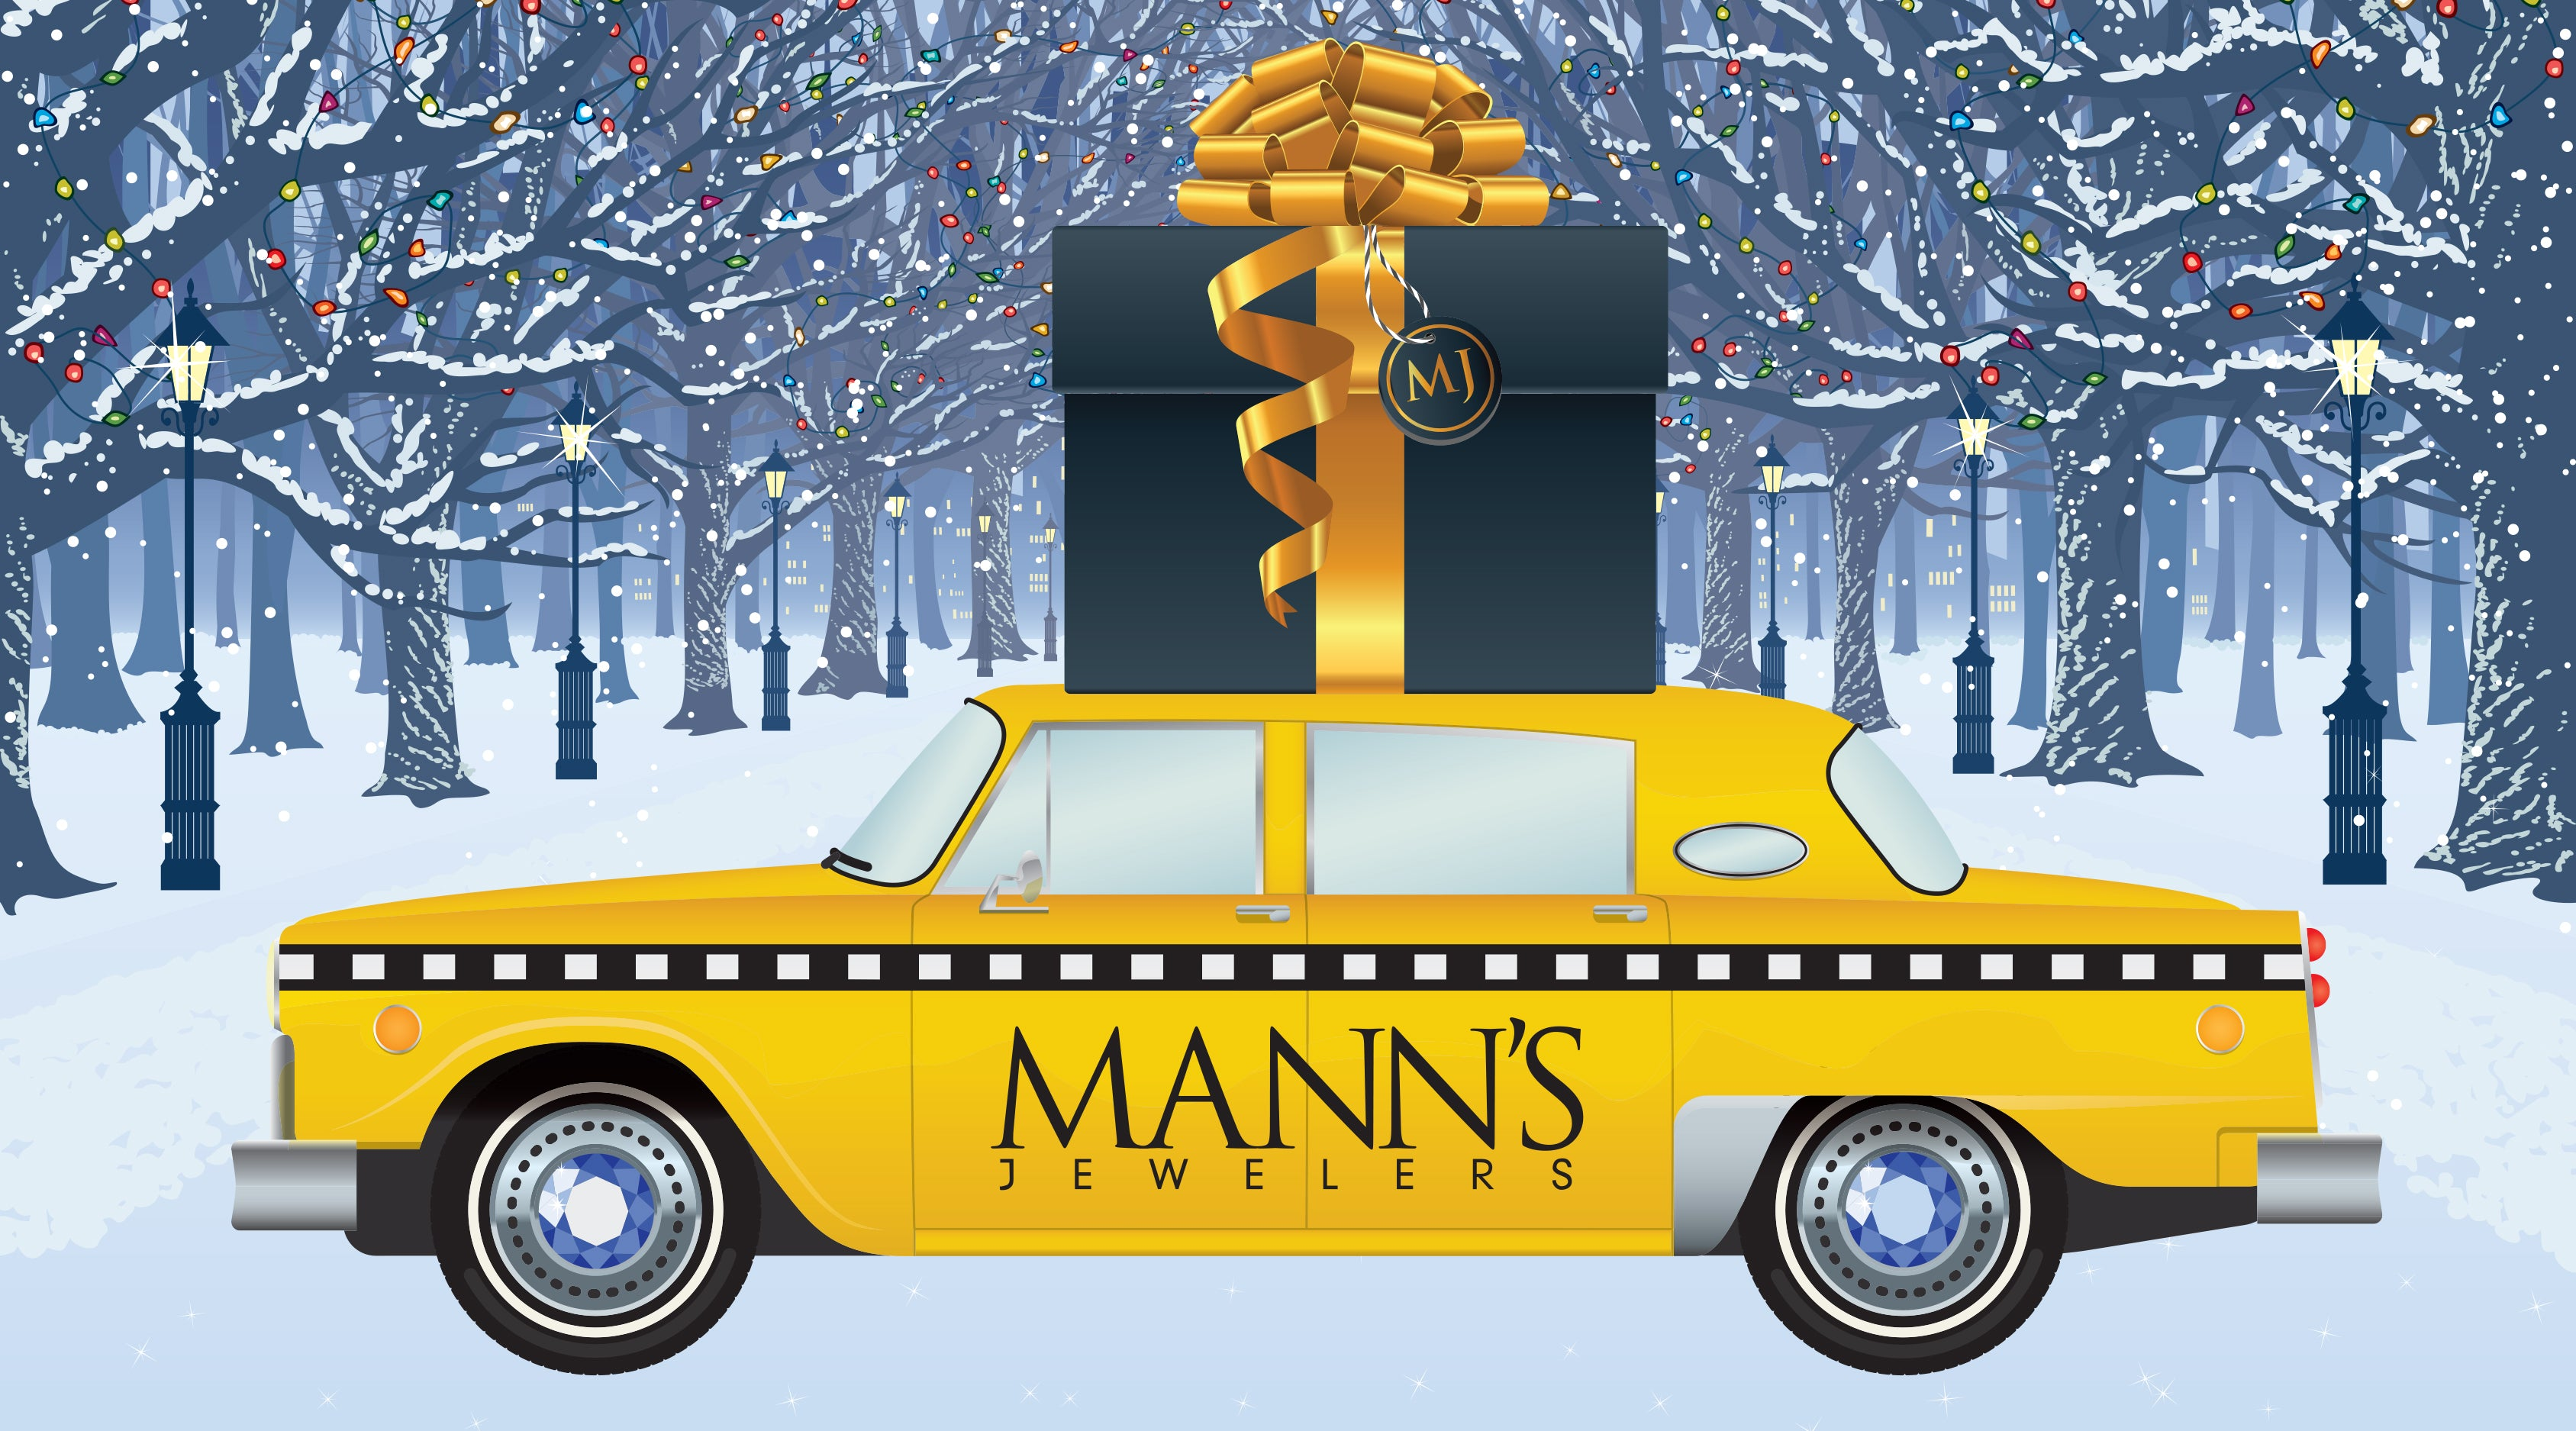 Mann's Jewelers Holiday Postcard with yellow cab